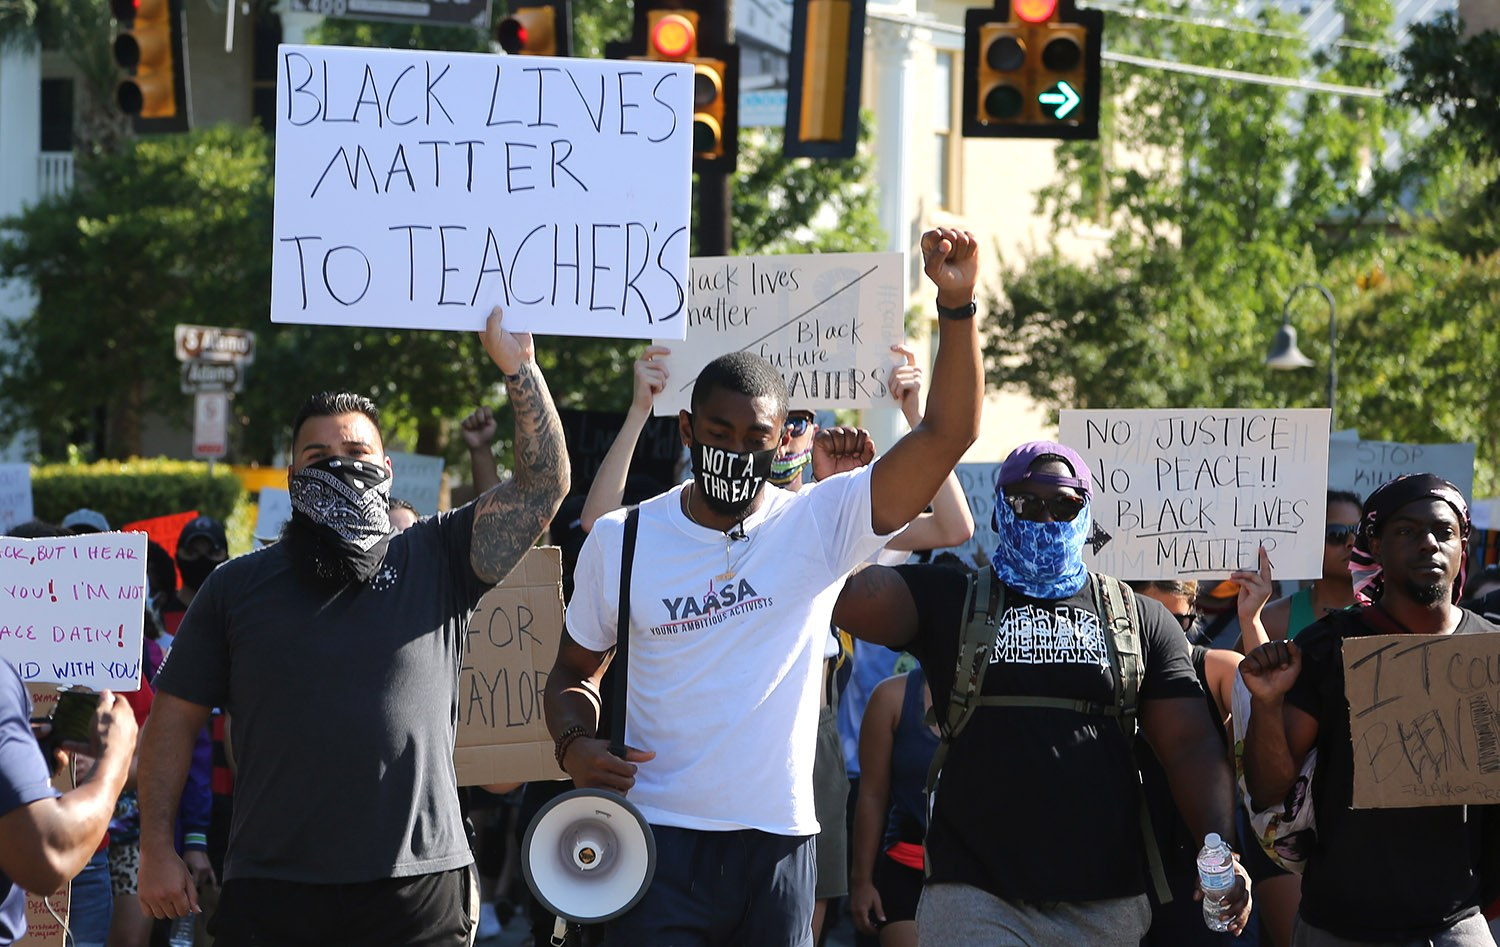 The Black Lives Matter protest and march organized by the Ambitious Young Activists makes its way through King William on the way to La Villita this afternoon. <b>Photo by Ben Olivo | Heron</b>